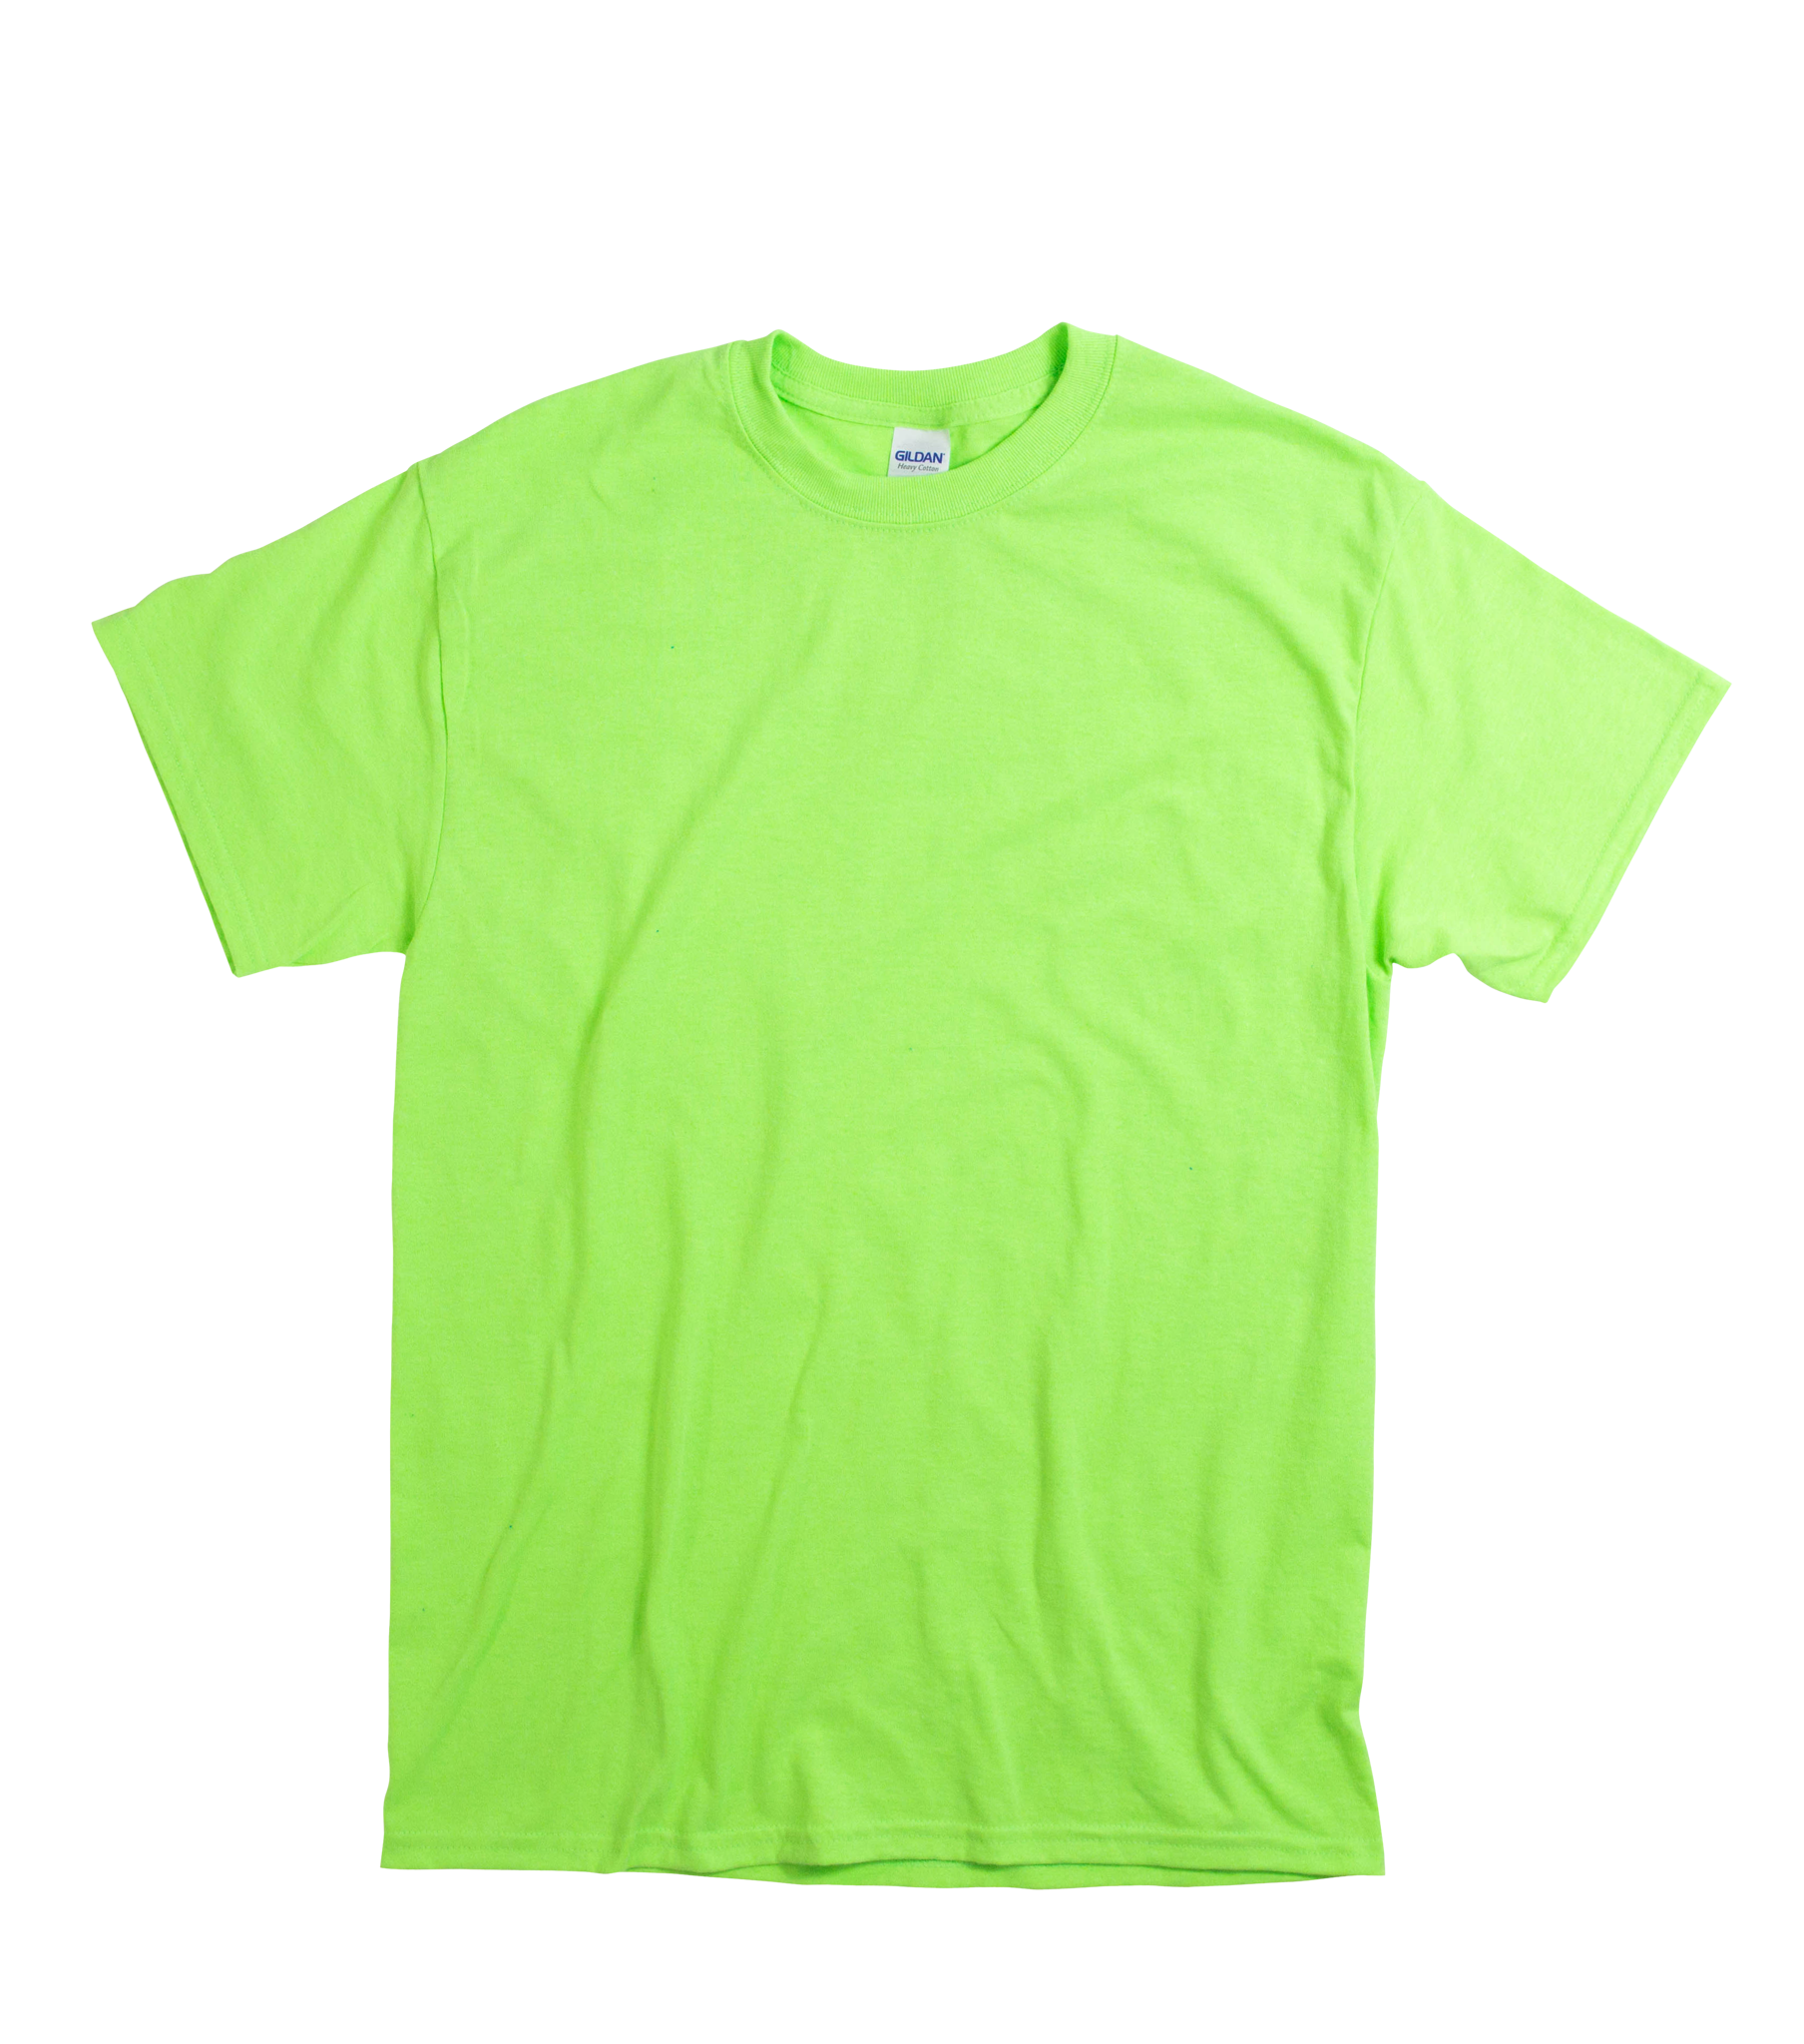 In addition to style, the Wrangler MWG Green Shirt provides a comfortable fit. The smooth green fabric is made with percent cotton, which is sturdy and breathable. The cotton is ounce solid twill with a firm, durable finish.